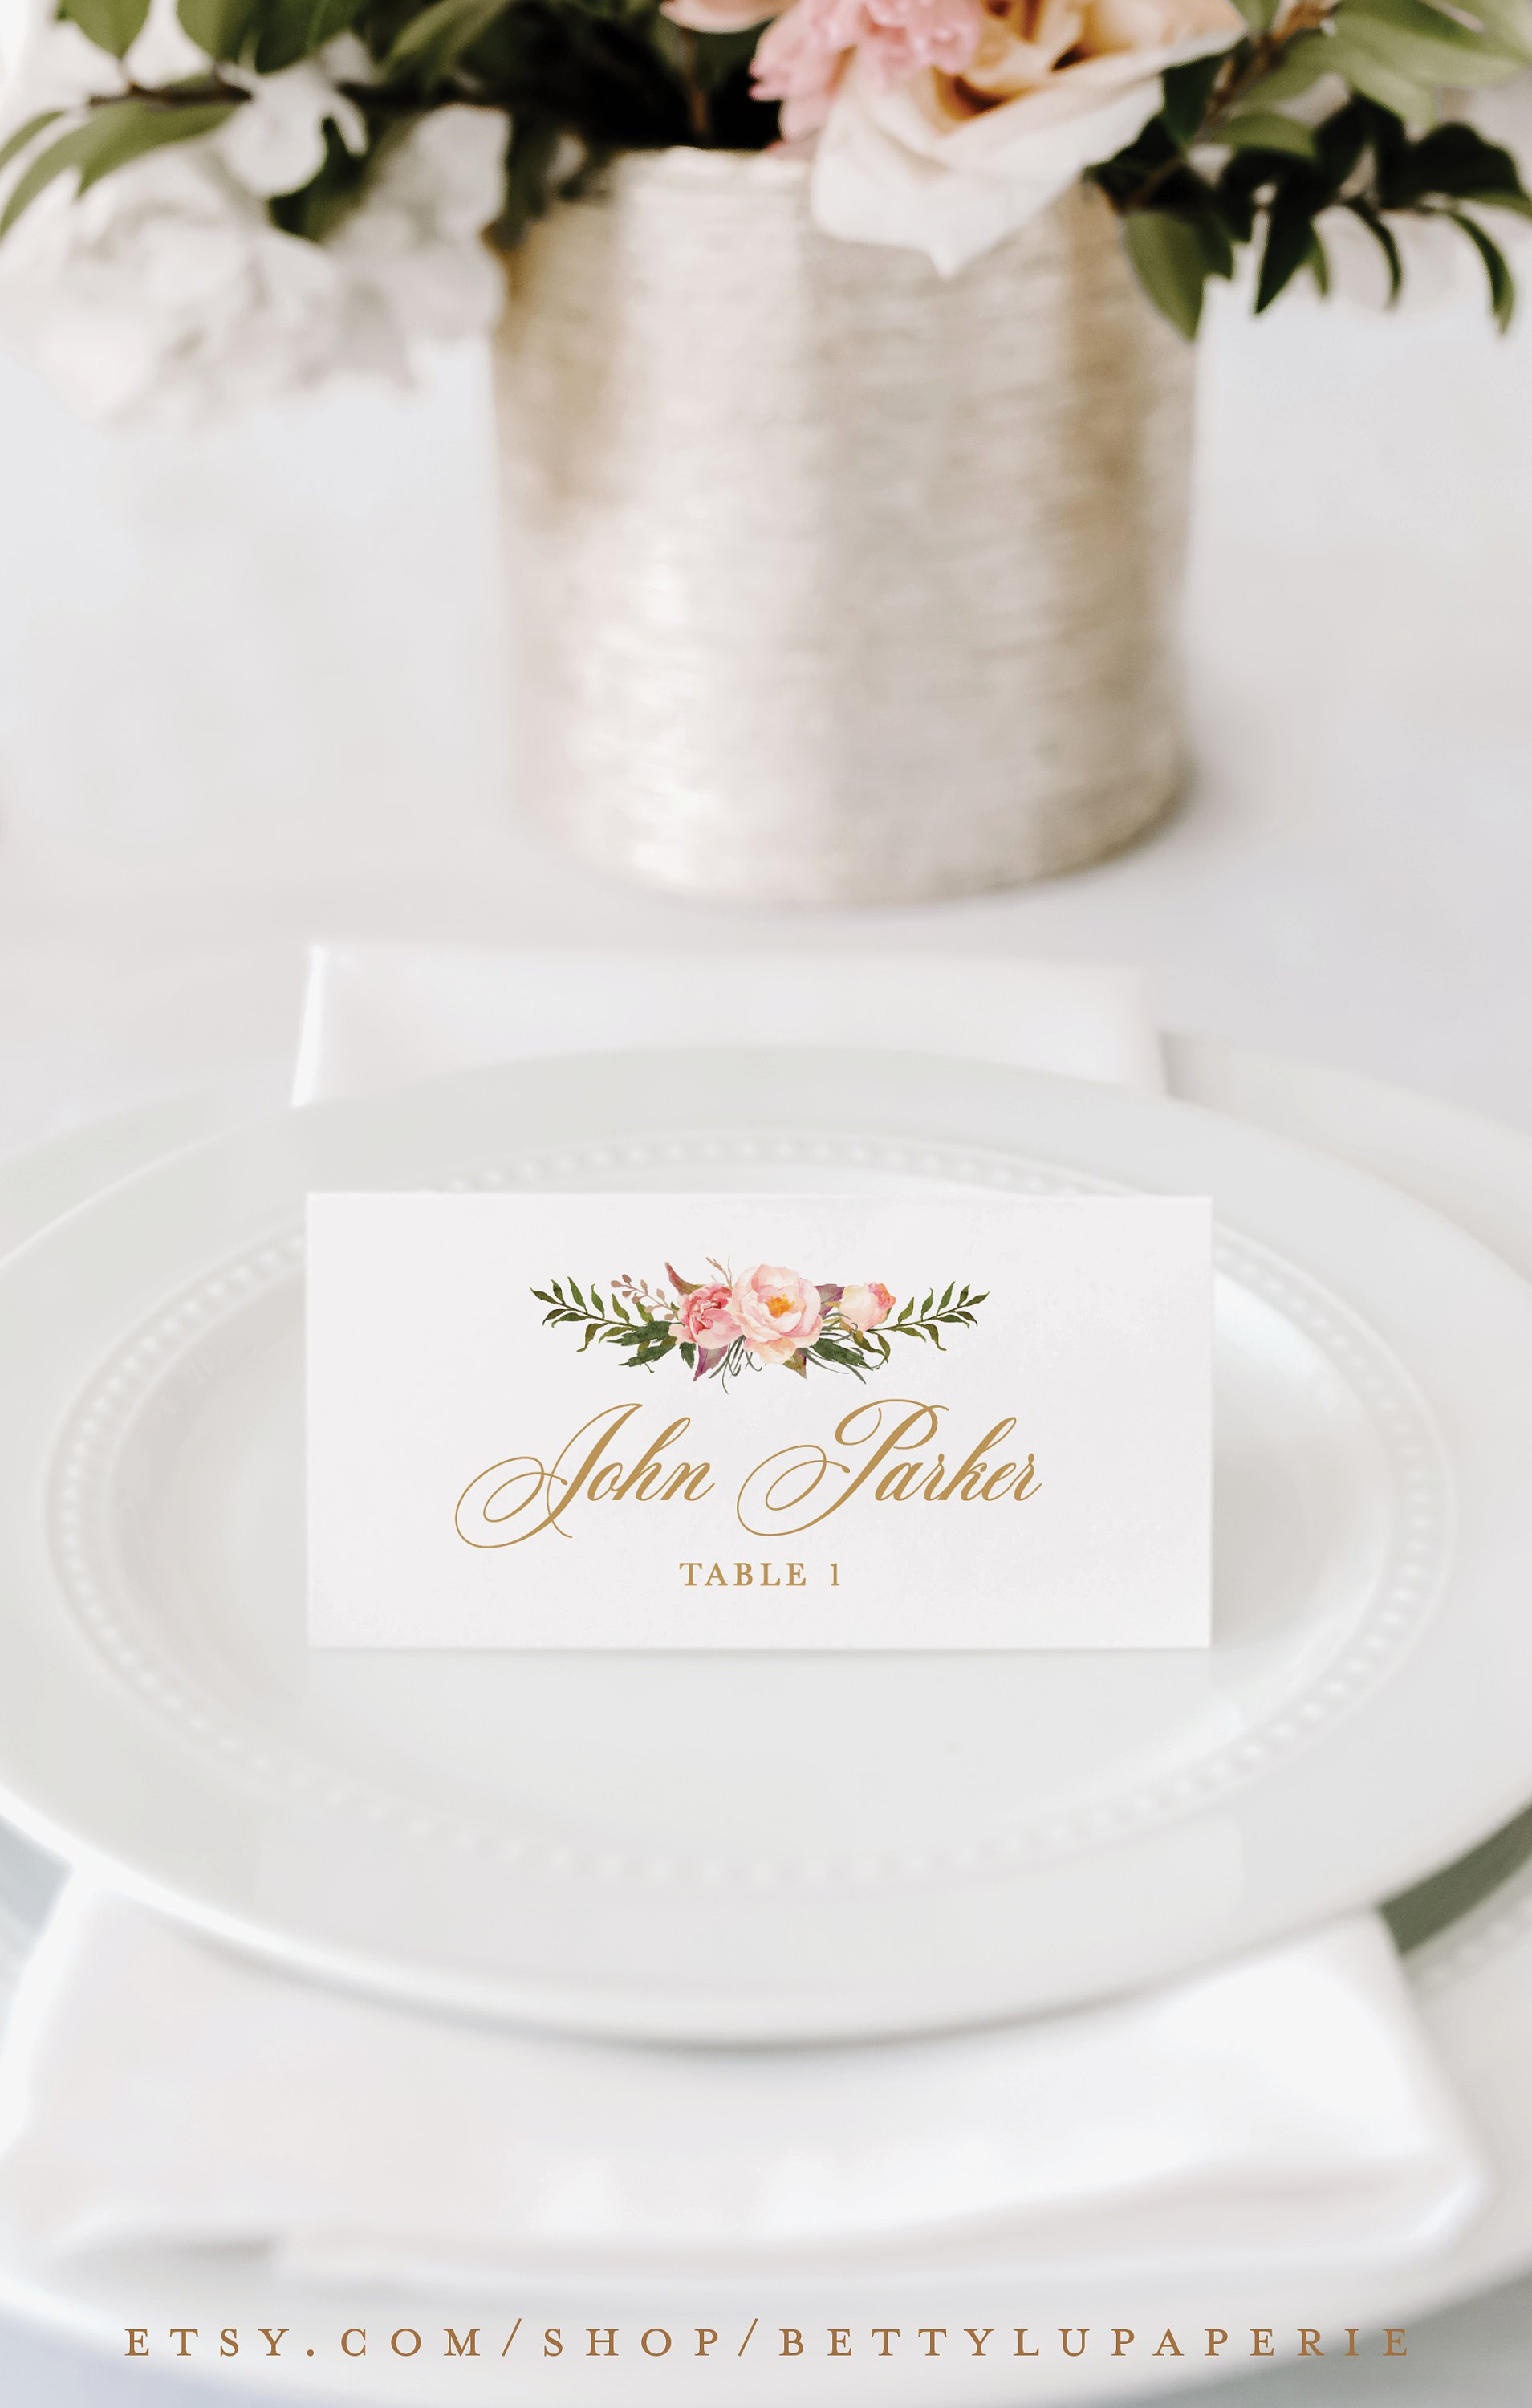 Blush Floral Wedding Place Cards.jpg